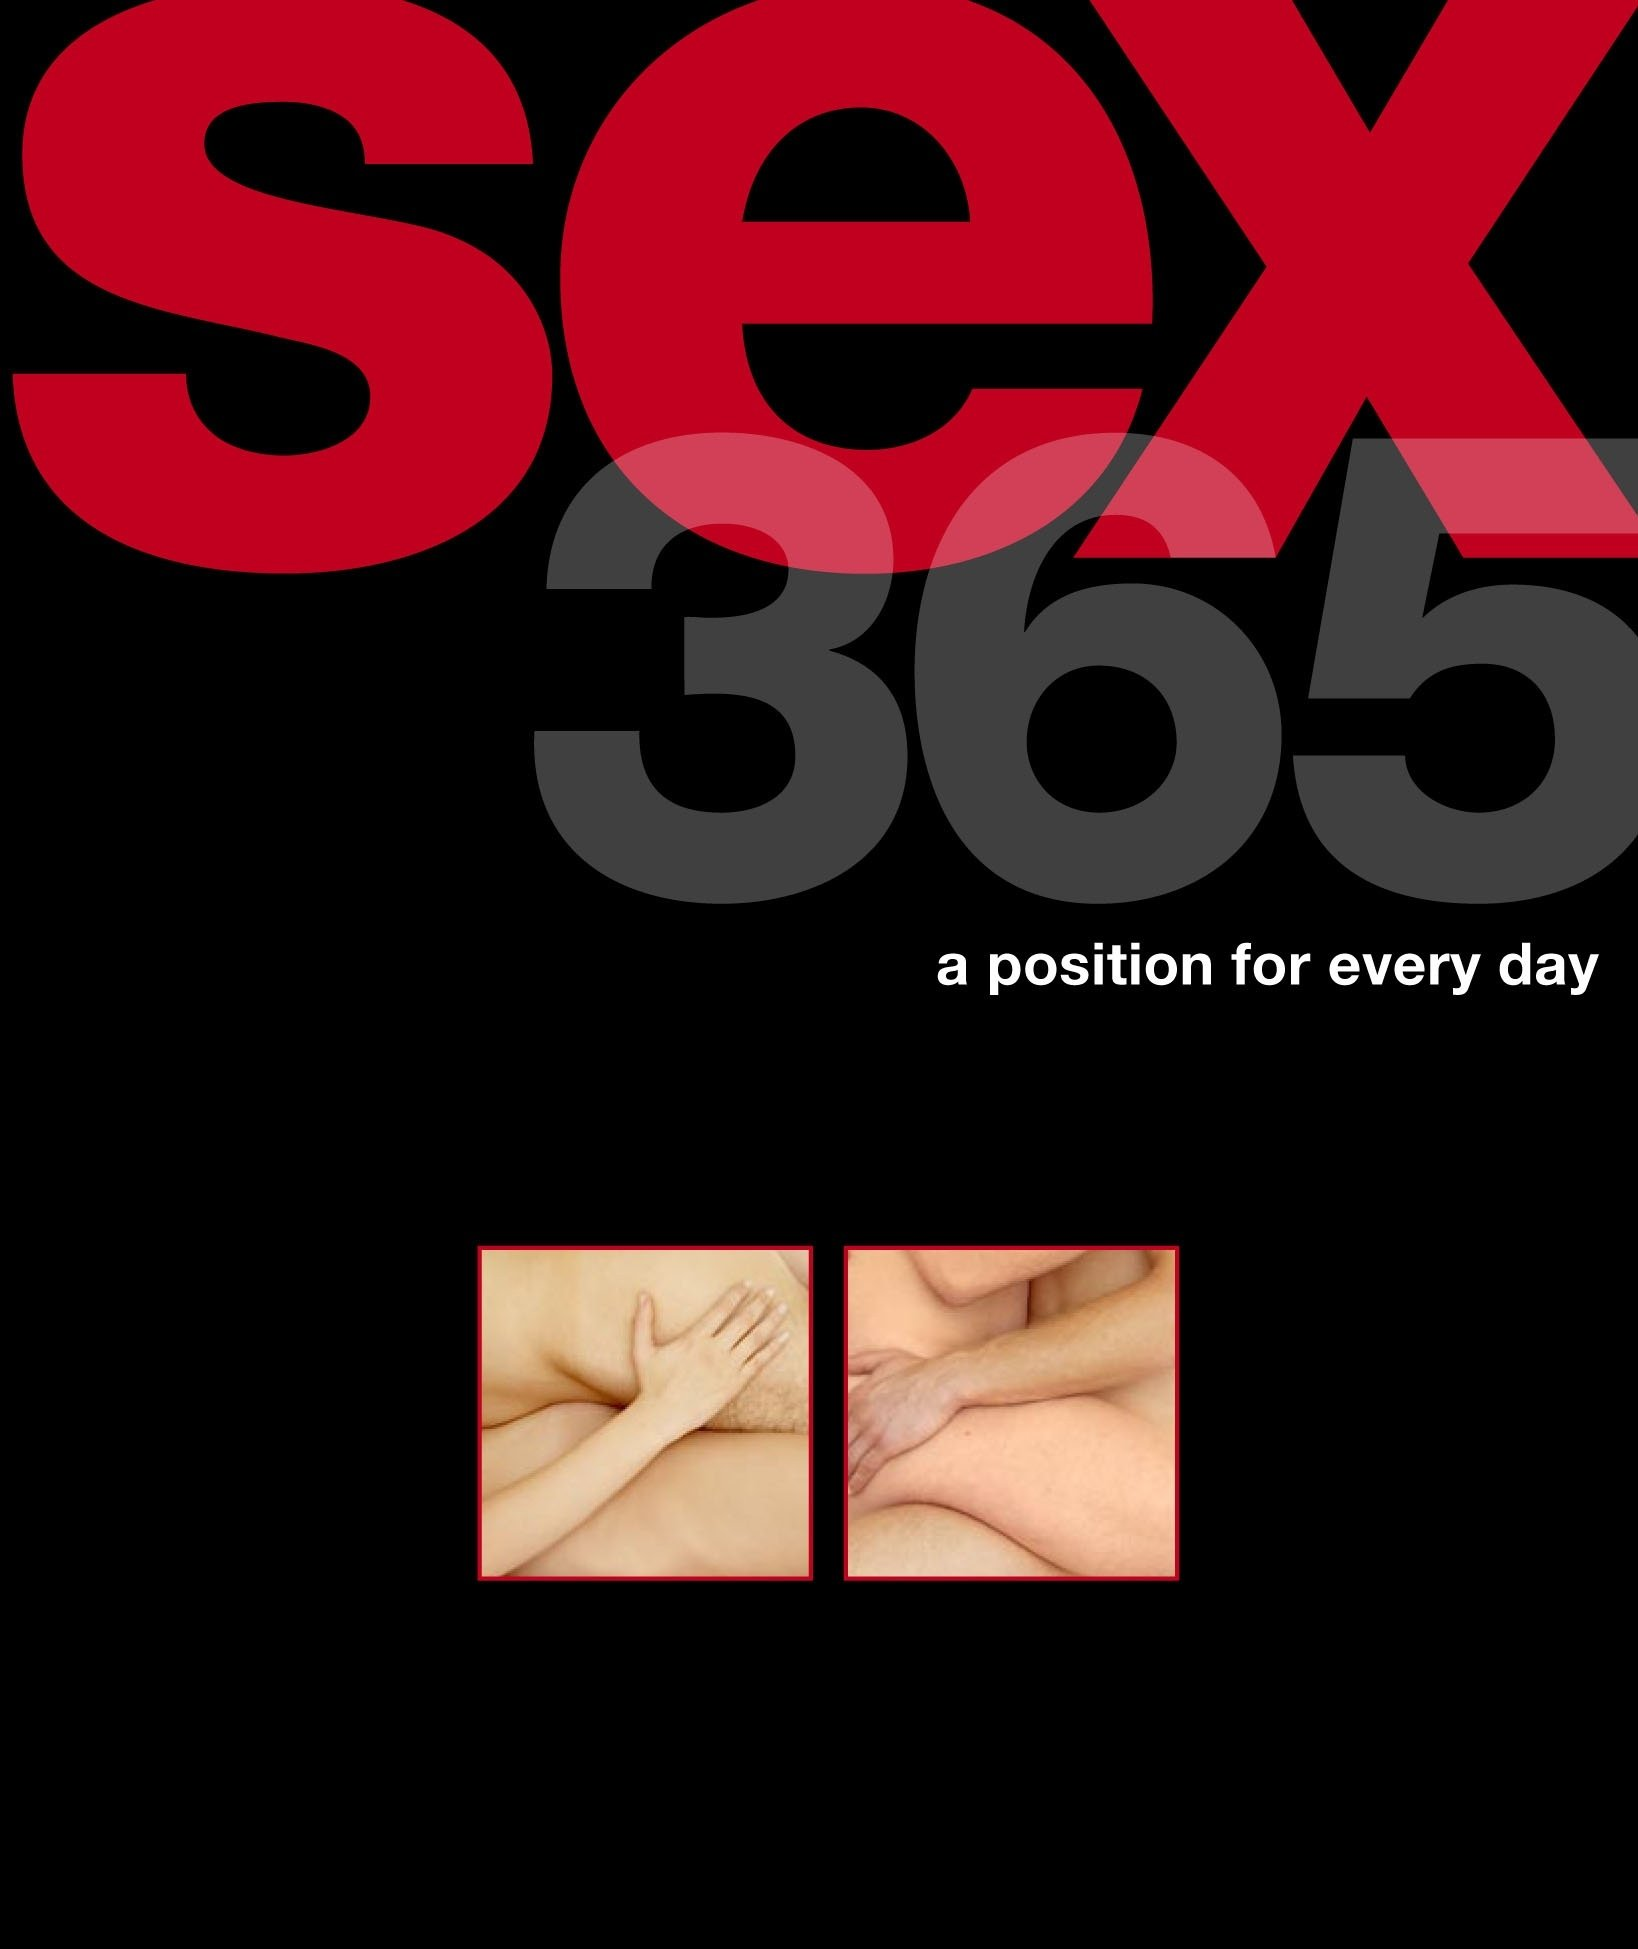 Sex 365 a position for everyday